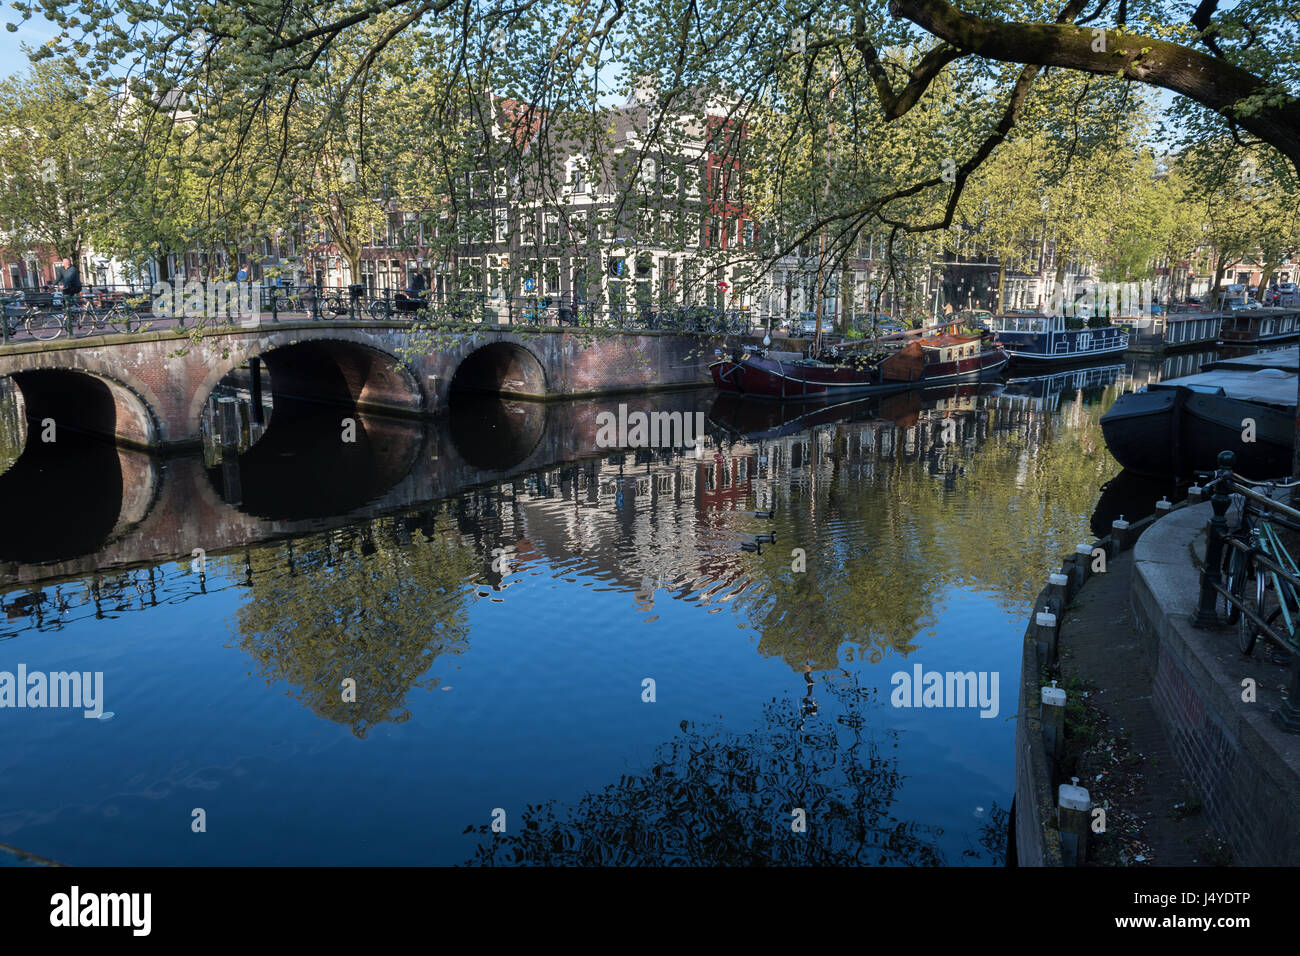 Houseboats in the spring sunshine on Brouwersgracht canal, Amsterdam - Stock Image